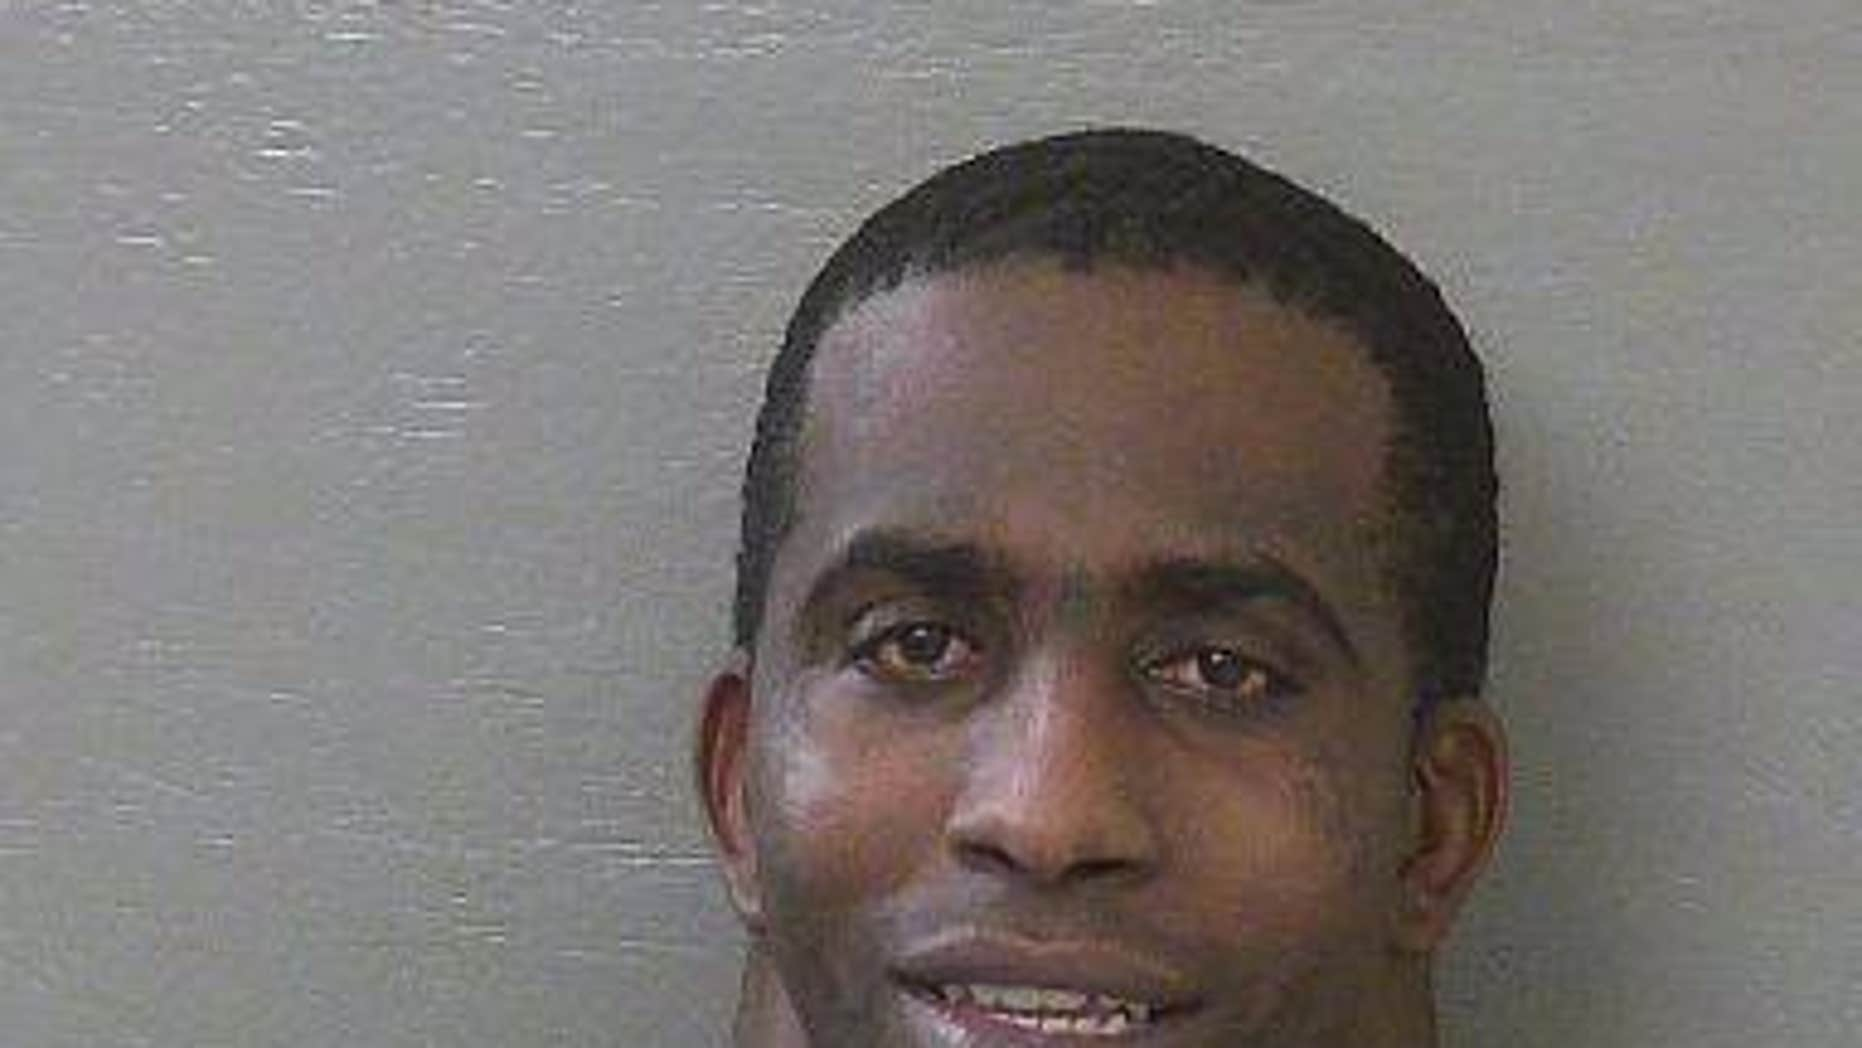 'Up to his neck in charges': Man's mugshot quickly goes viral